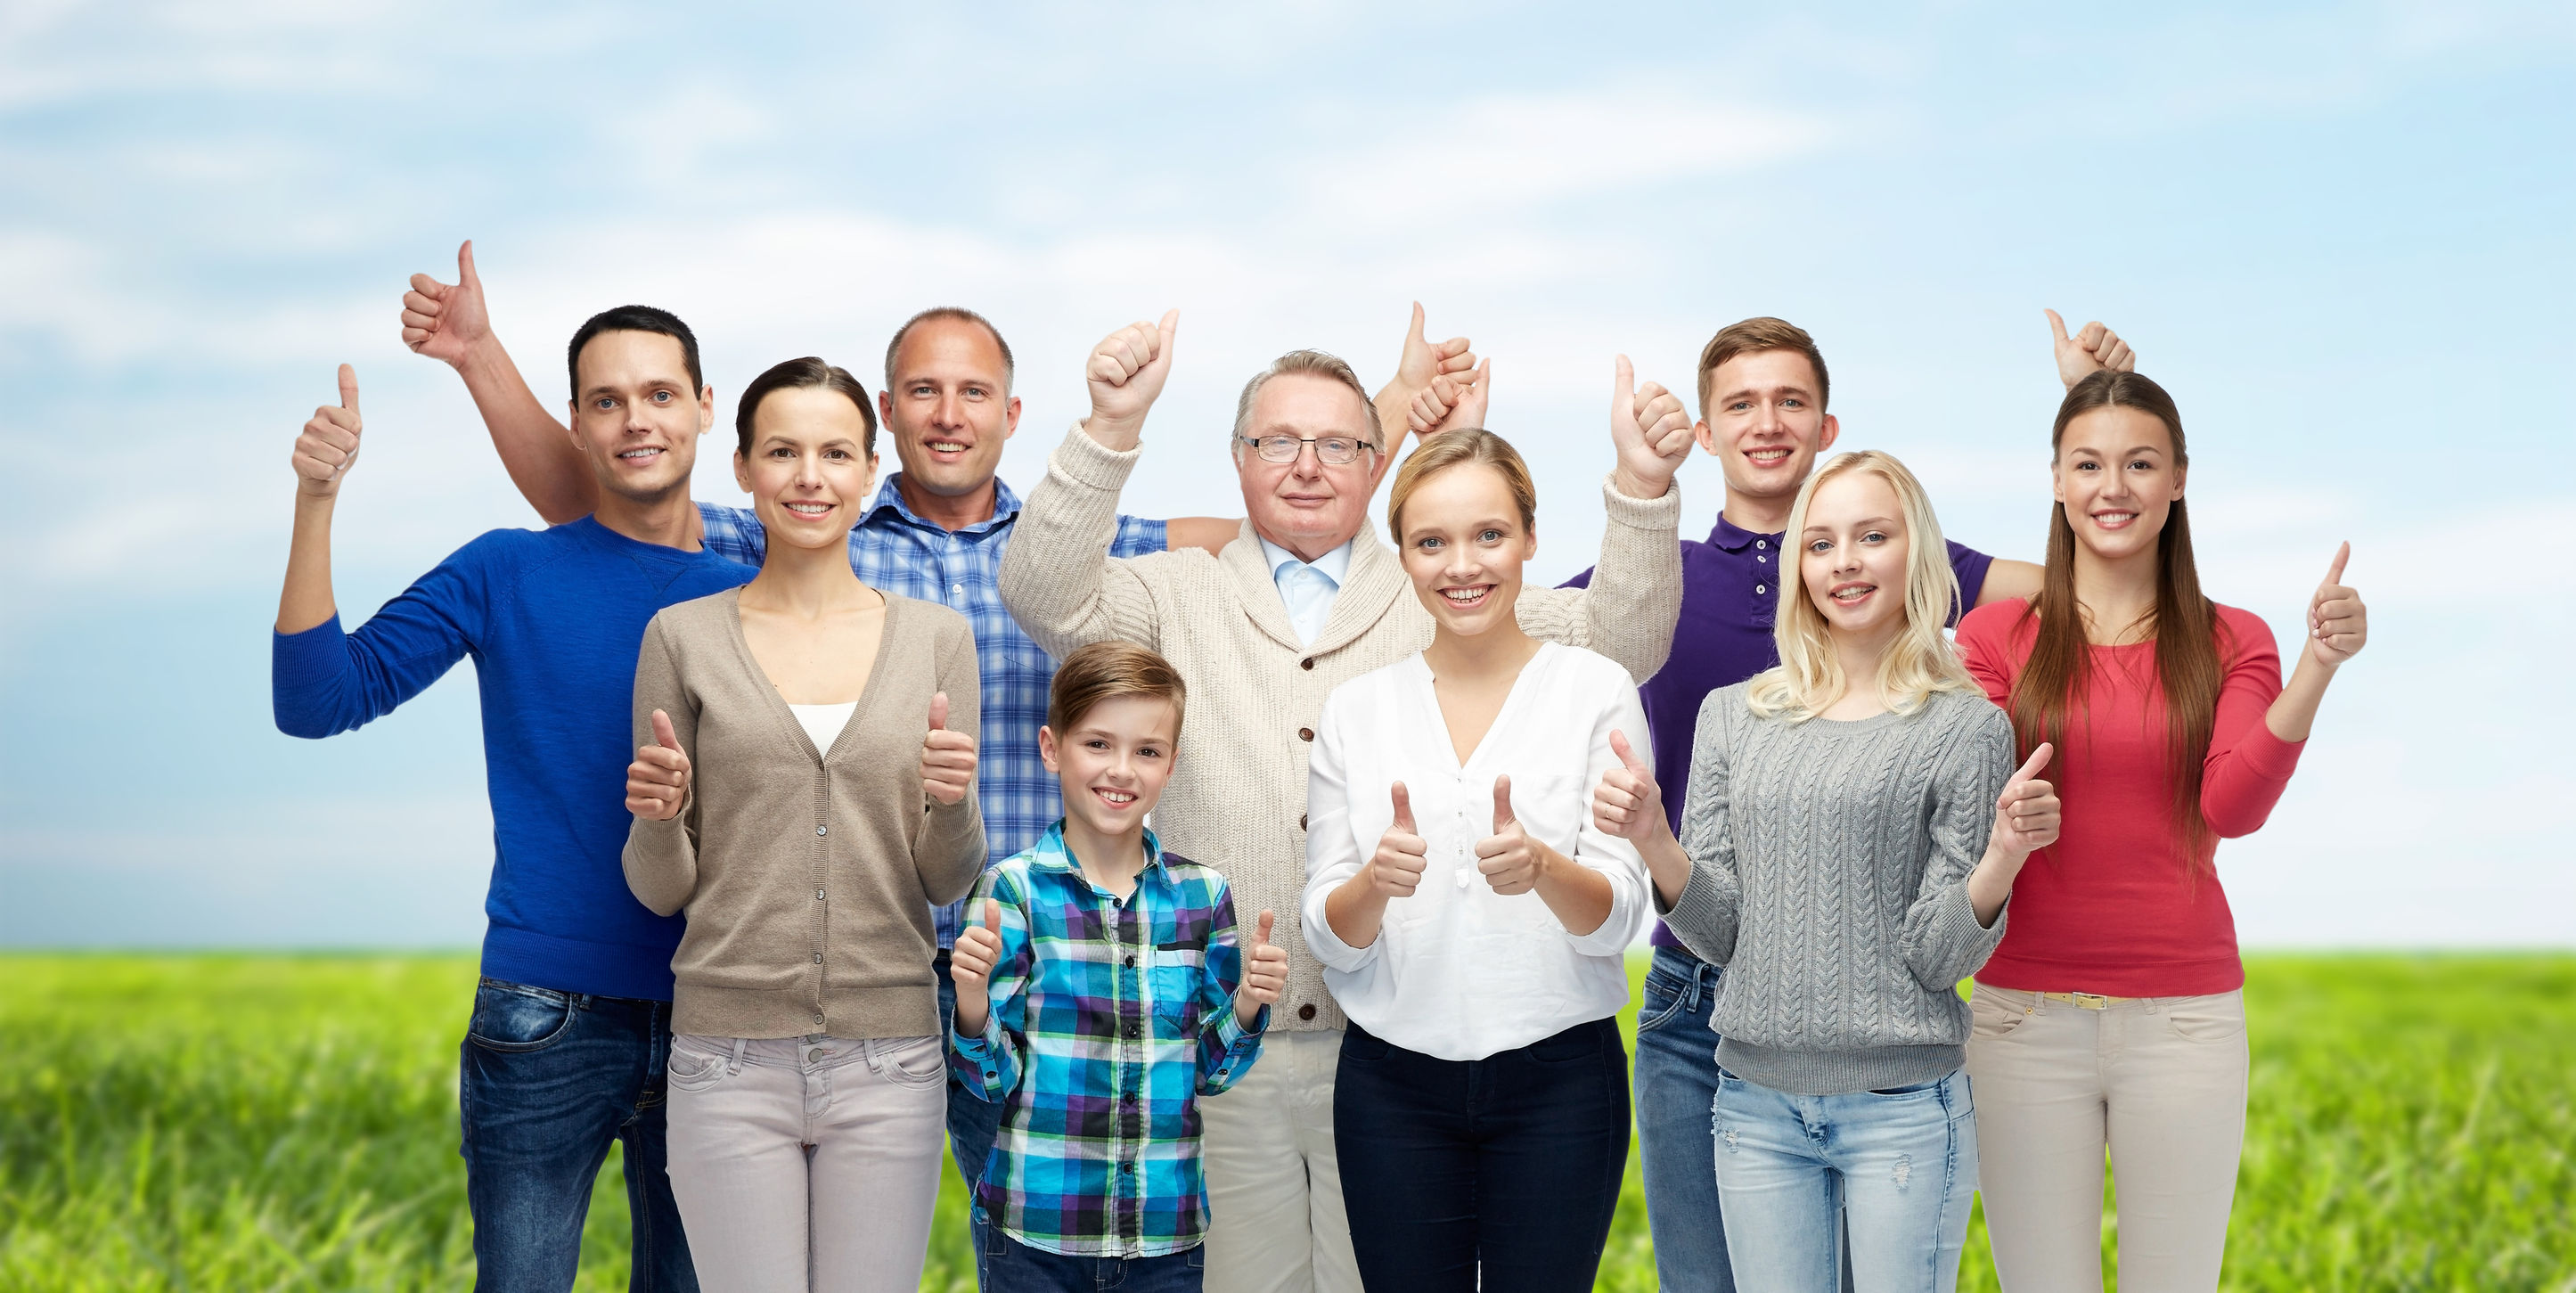 58800705 - gesture, family, generation and people concept - group of smiling men, women and boy showing thumbs up over blue sky and grass background